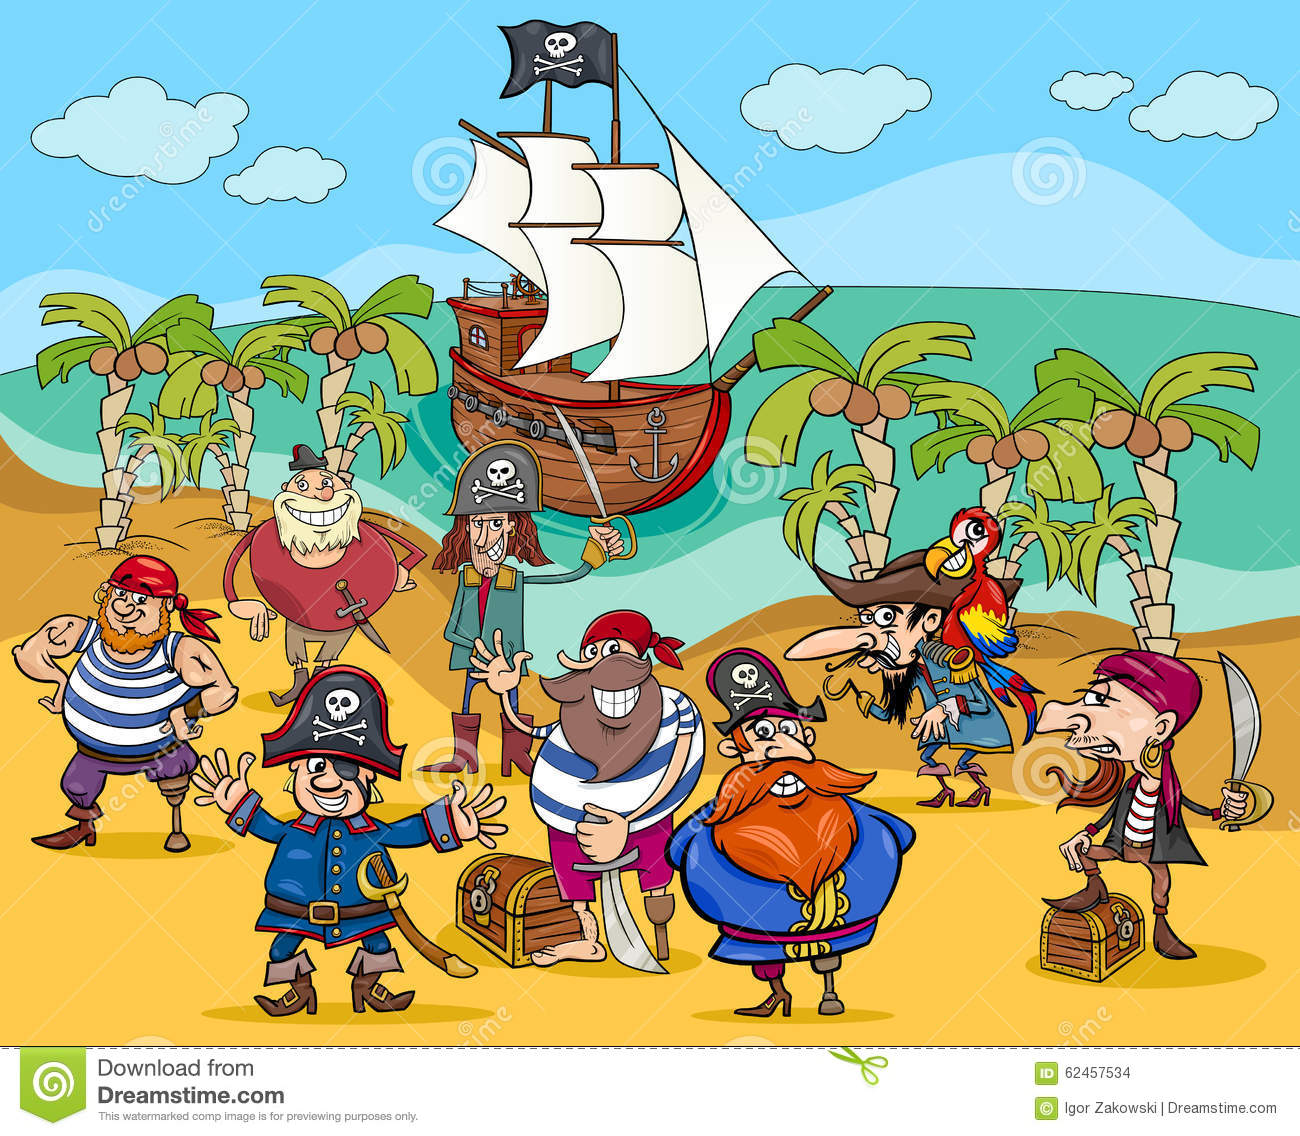 Who Is The Villain In Treasure Island